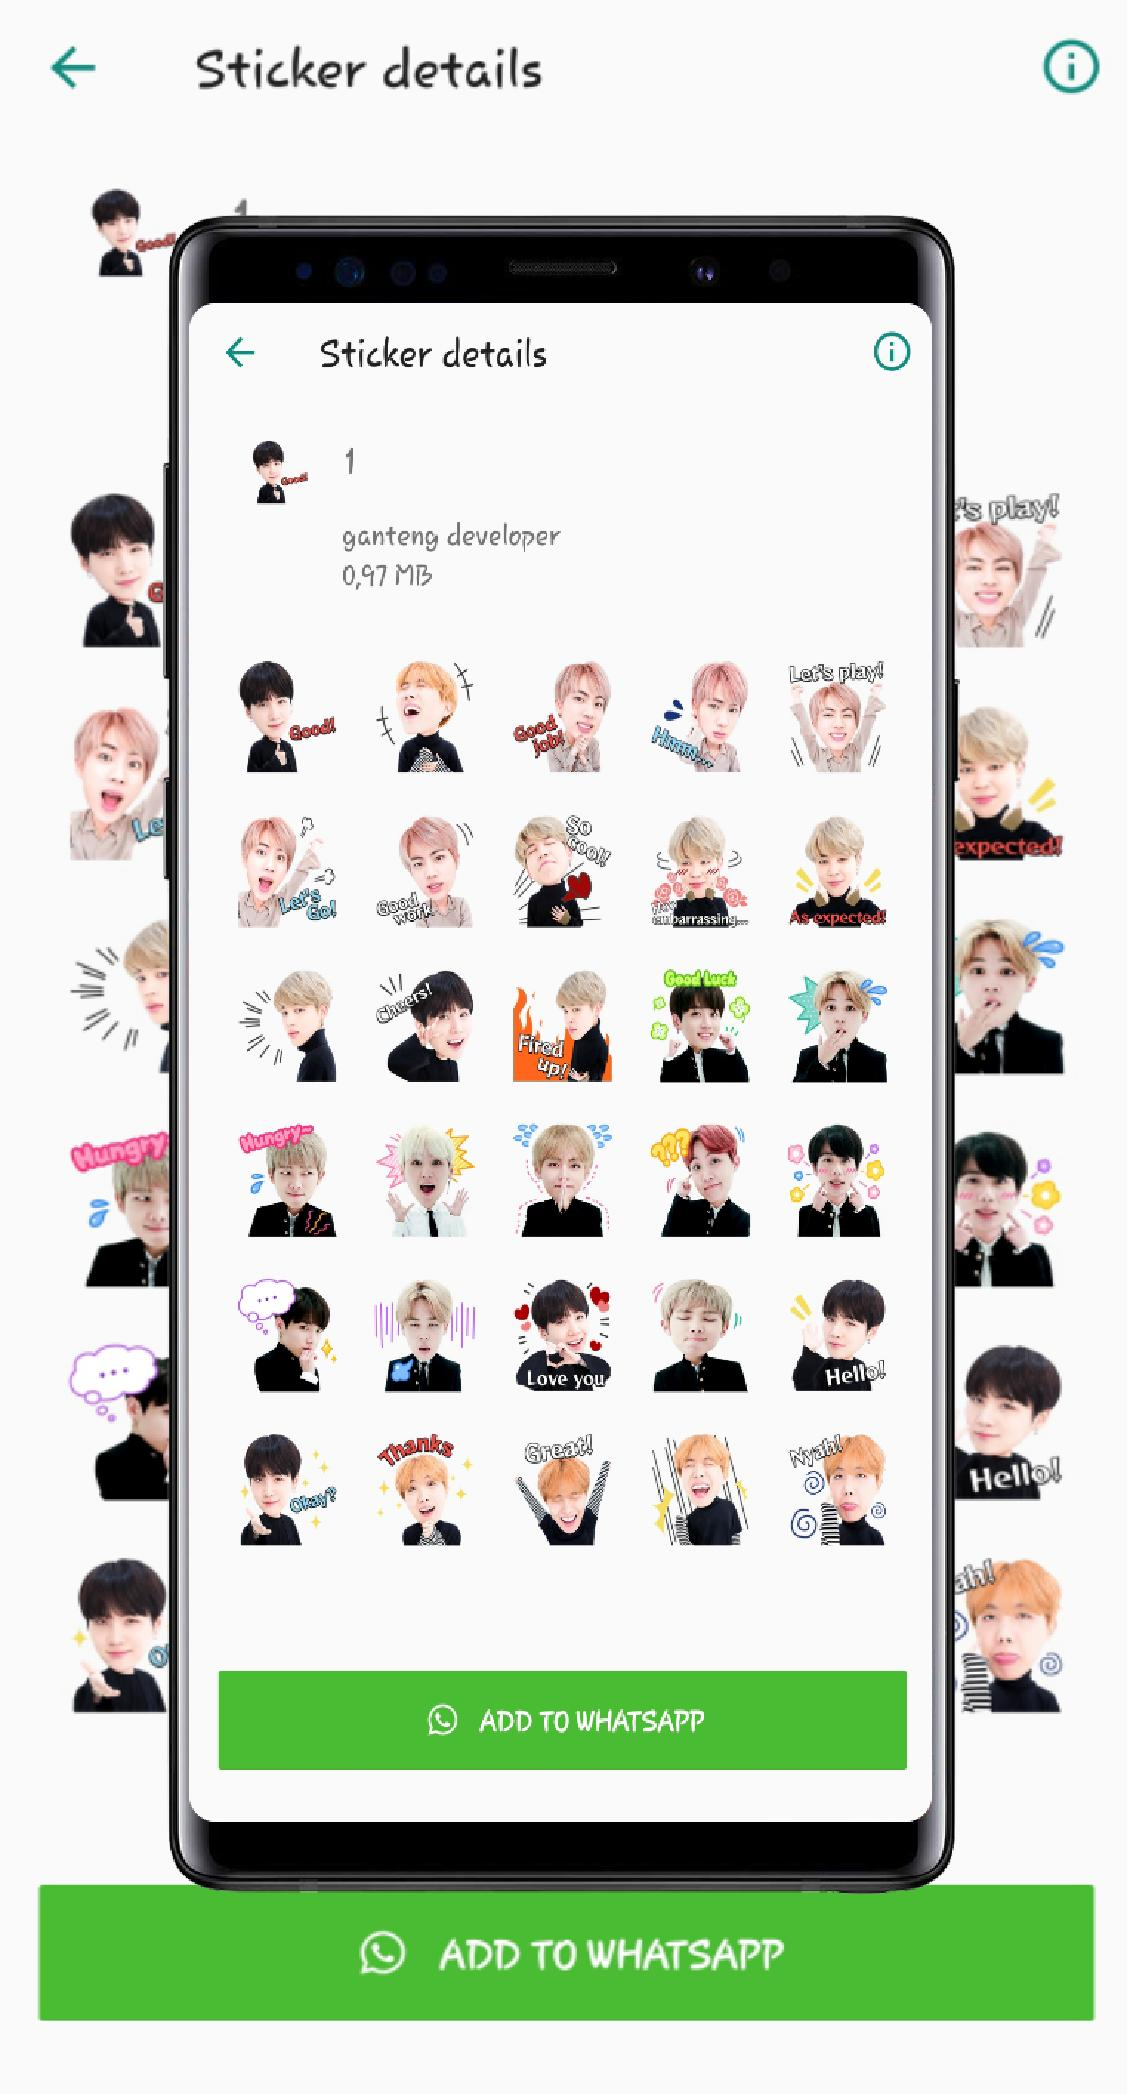 WA Sticker Kpop BTS for Whatsapp for Android - APK Download